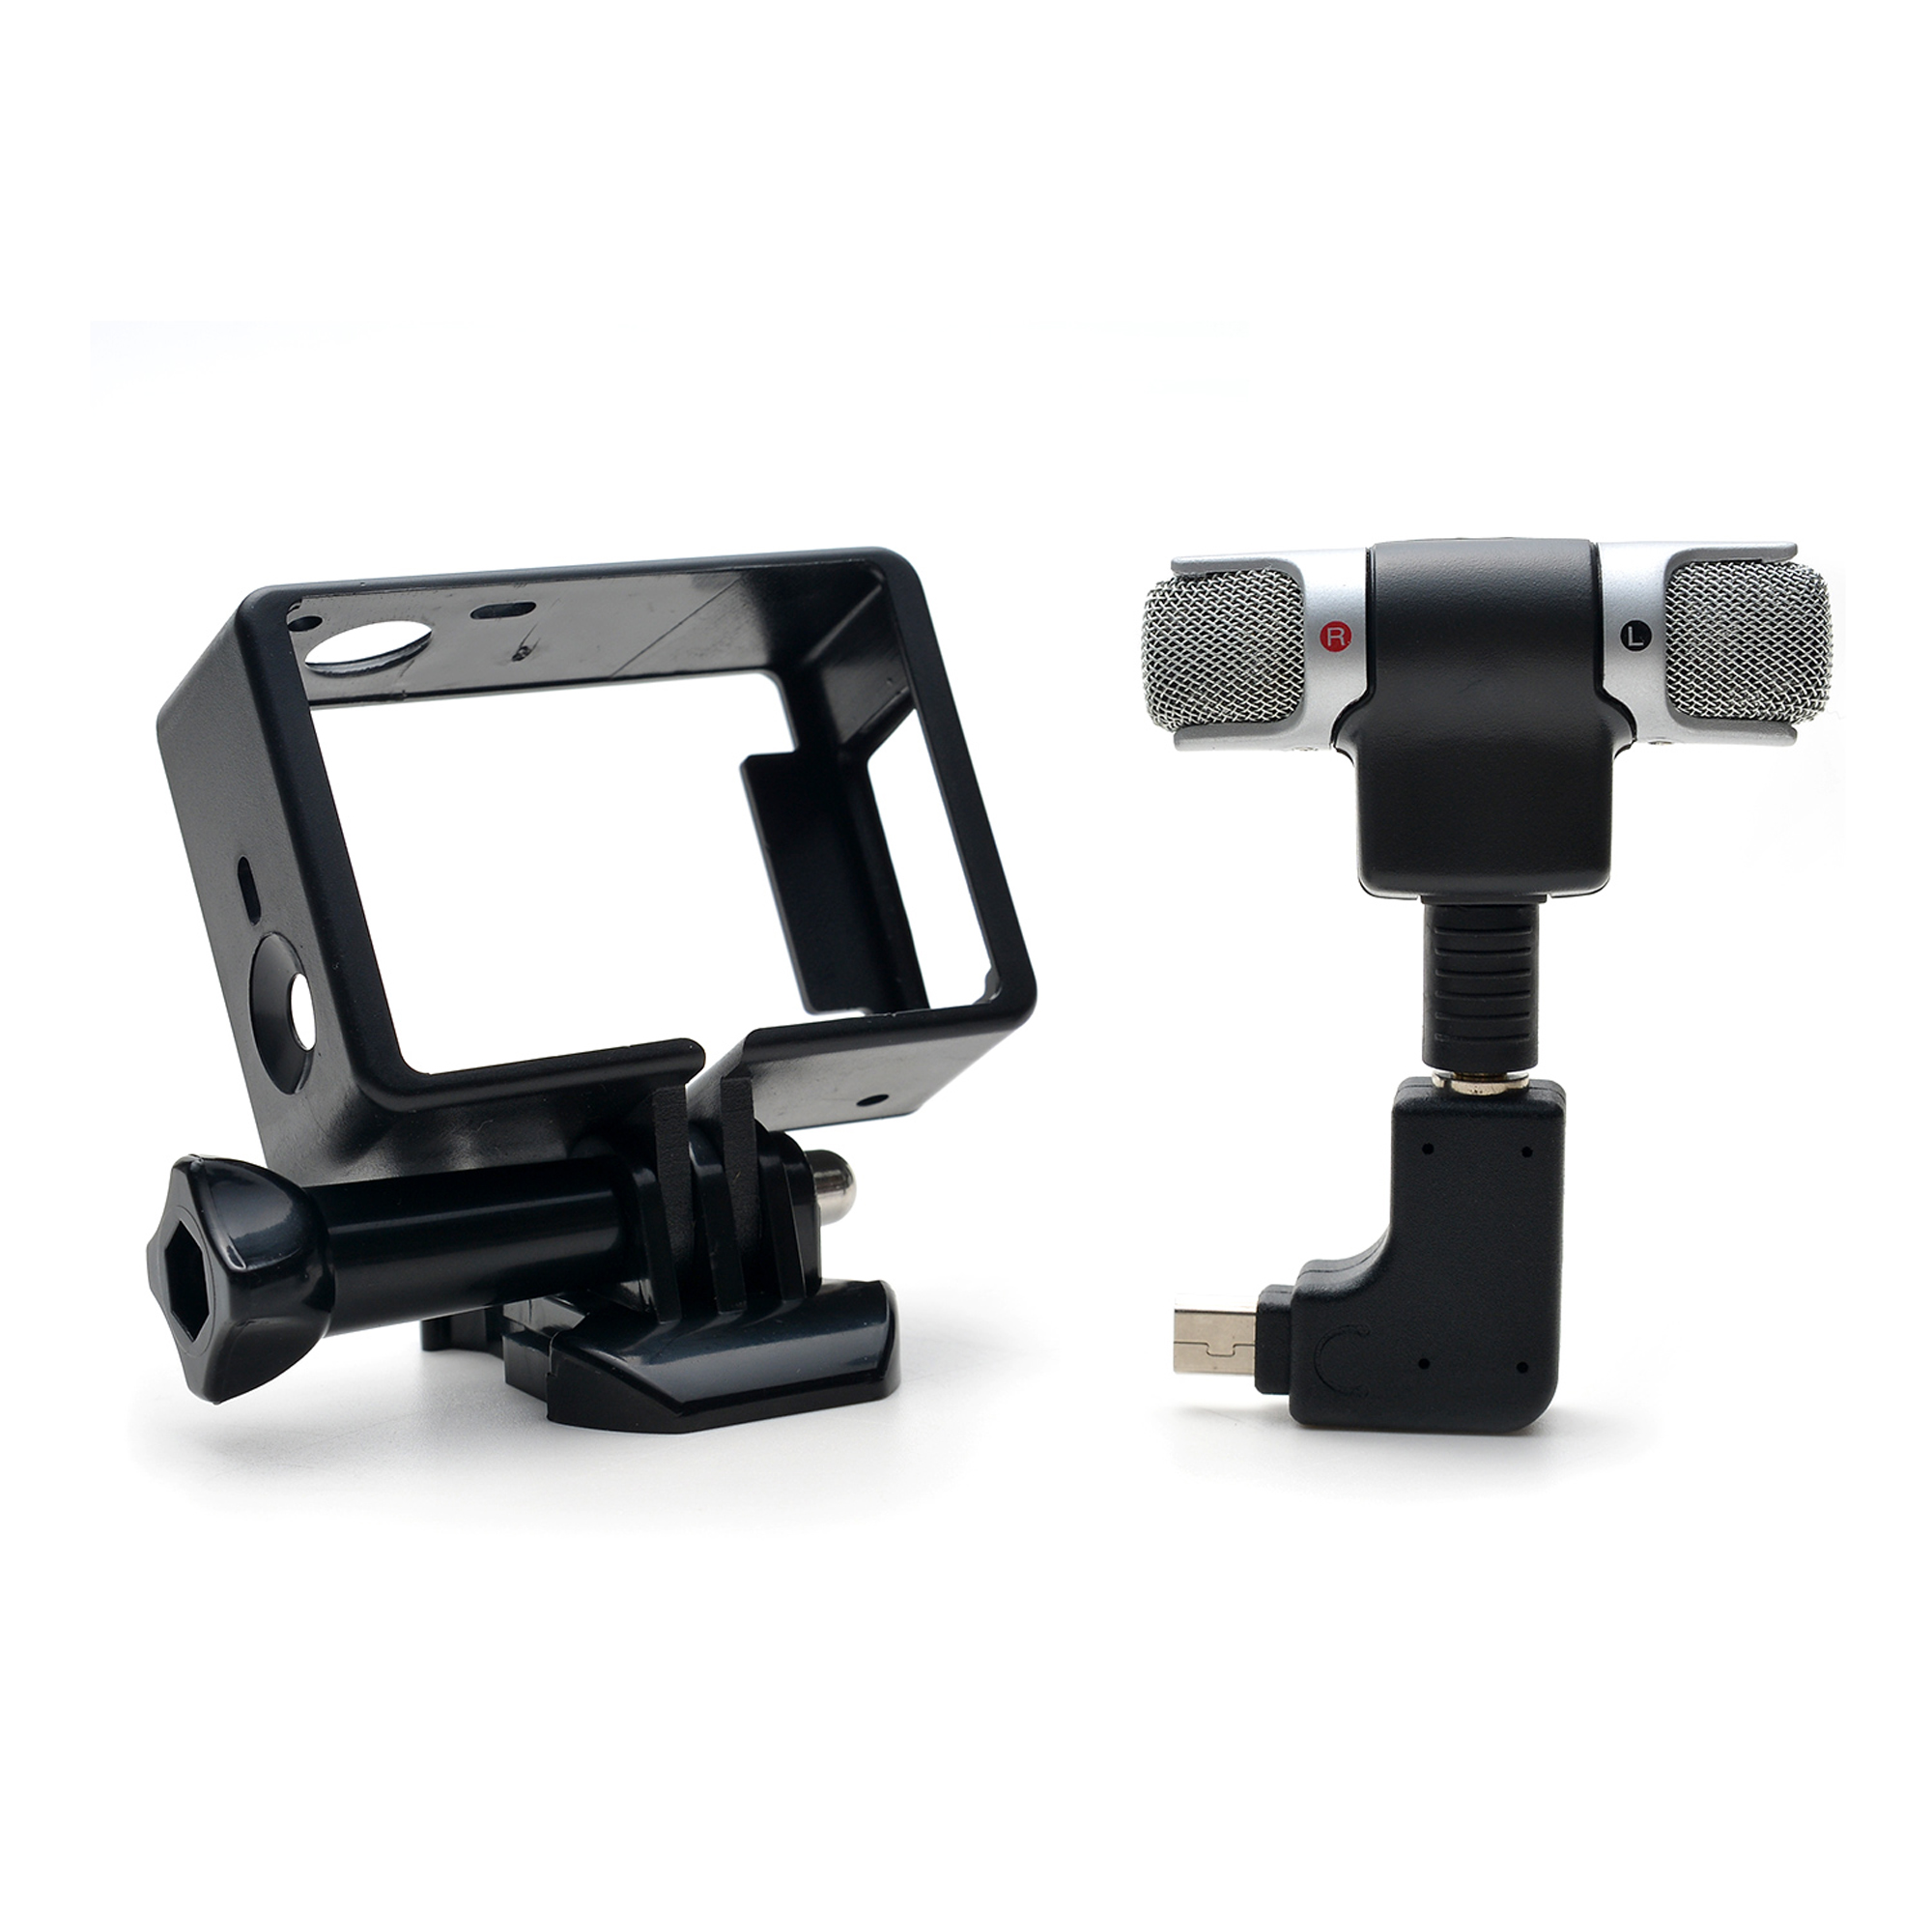 3.5mm MIC Adapter Stereo Microphone accessories with Standard Frame for GoPro Hero 3 3+ 4 by